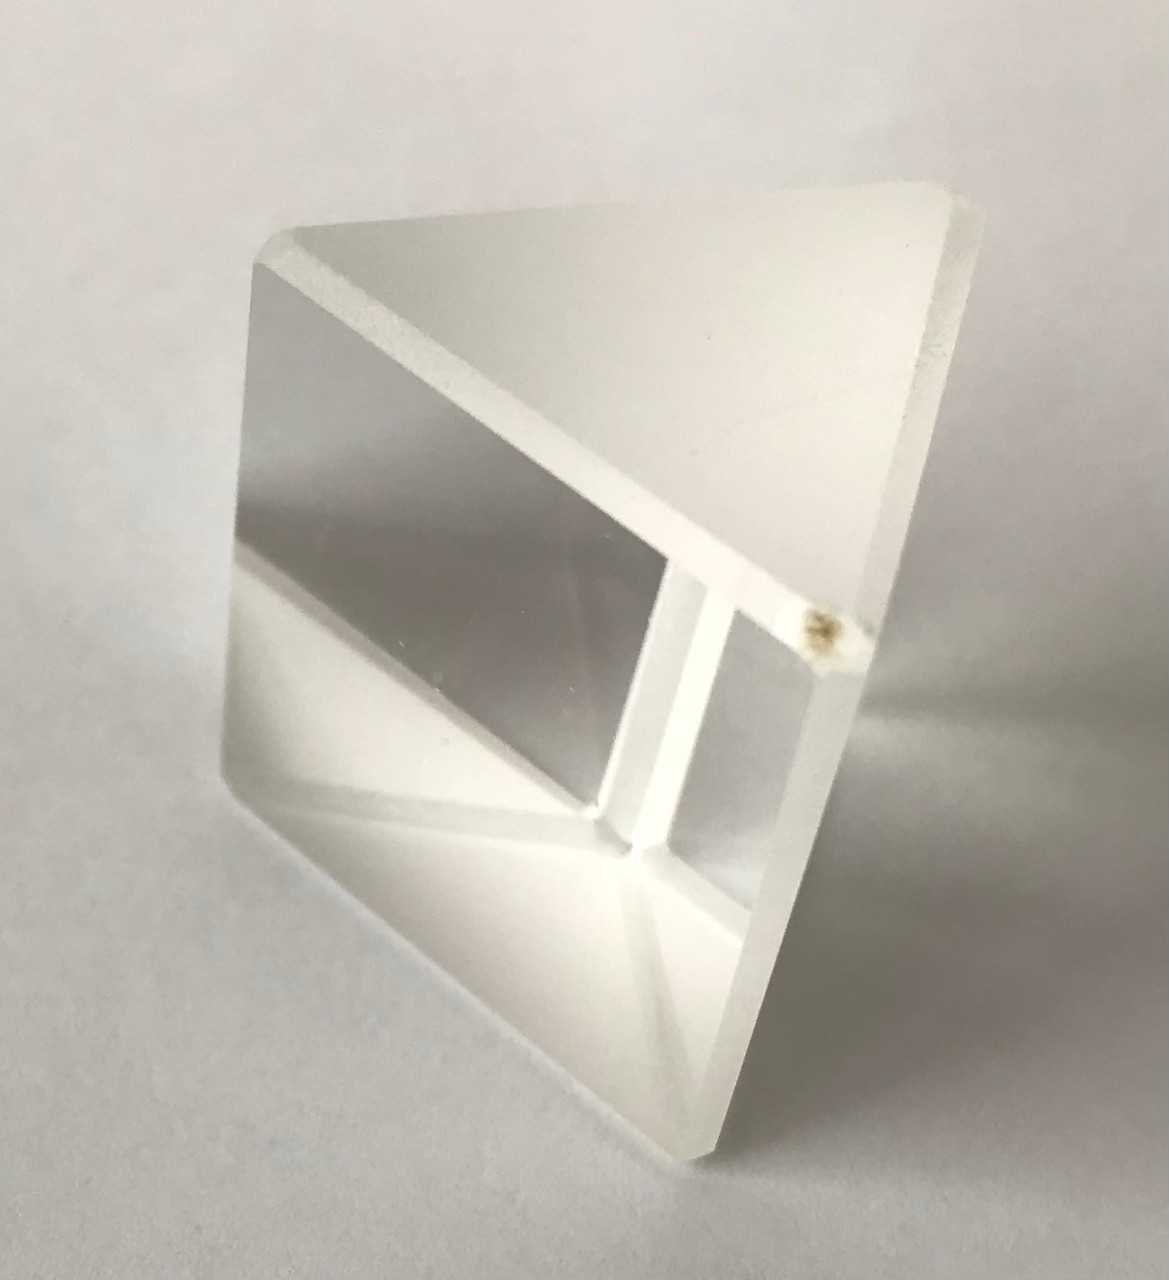 Glass Prism, Equilateral (Length 25 mm, Face 25mm)